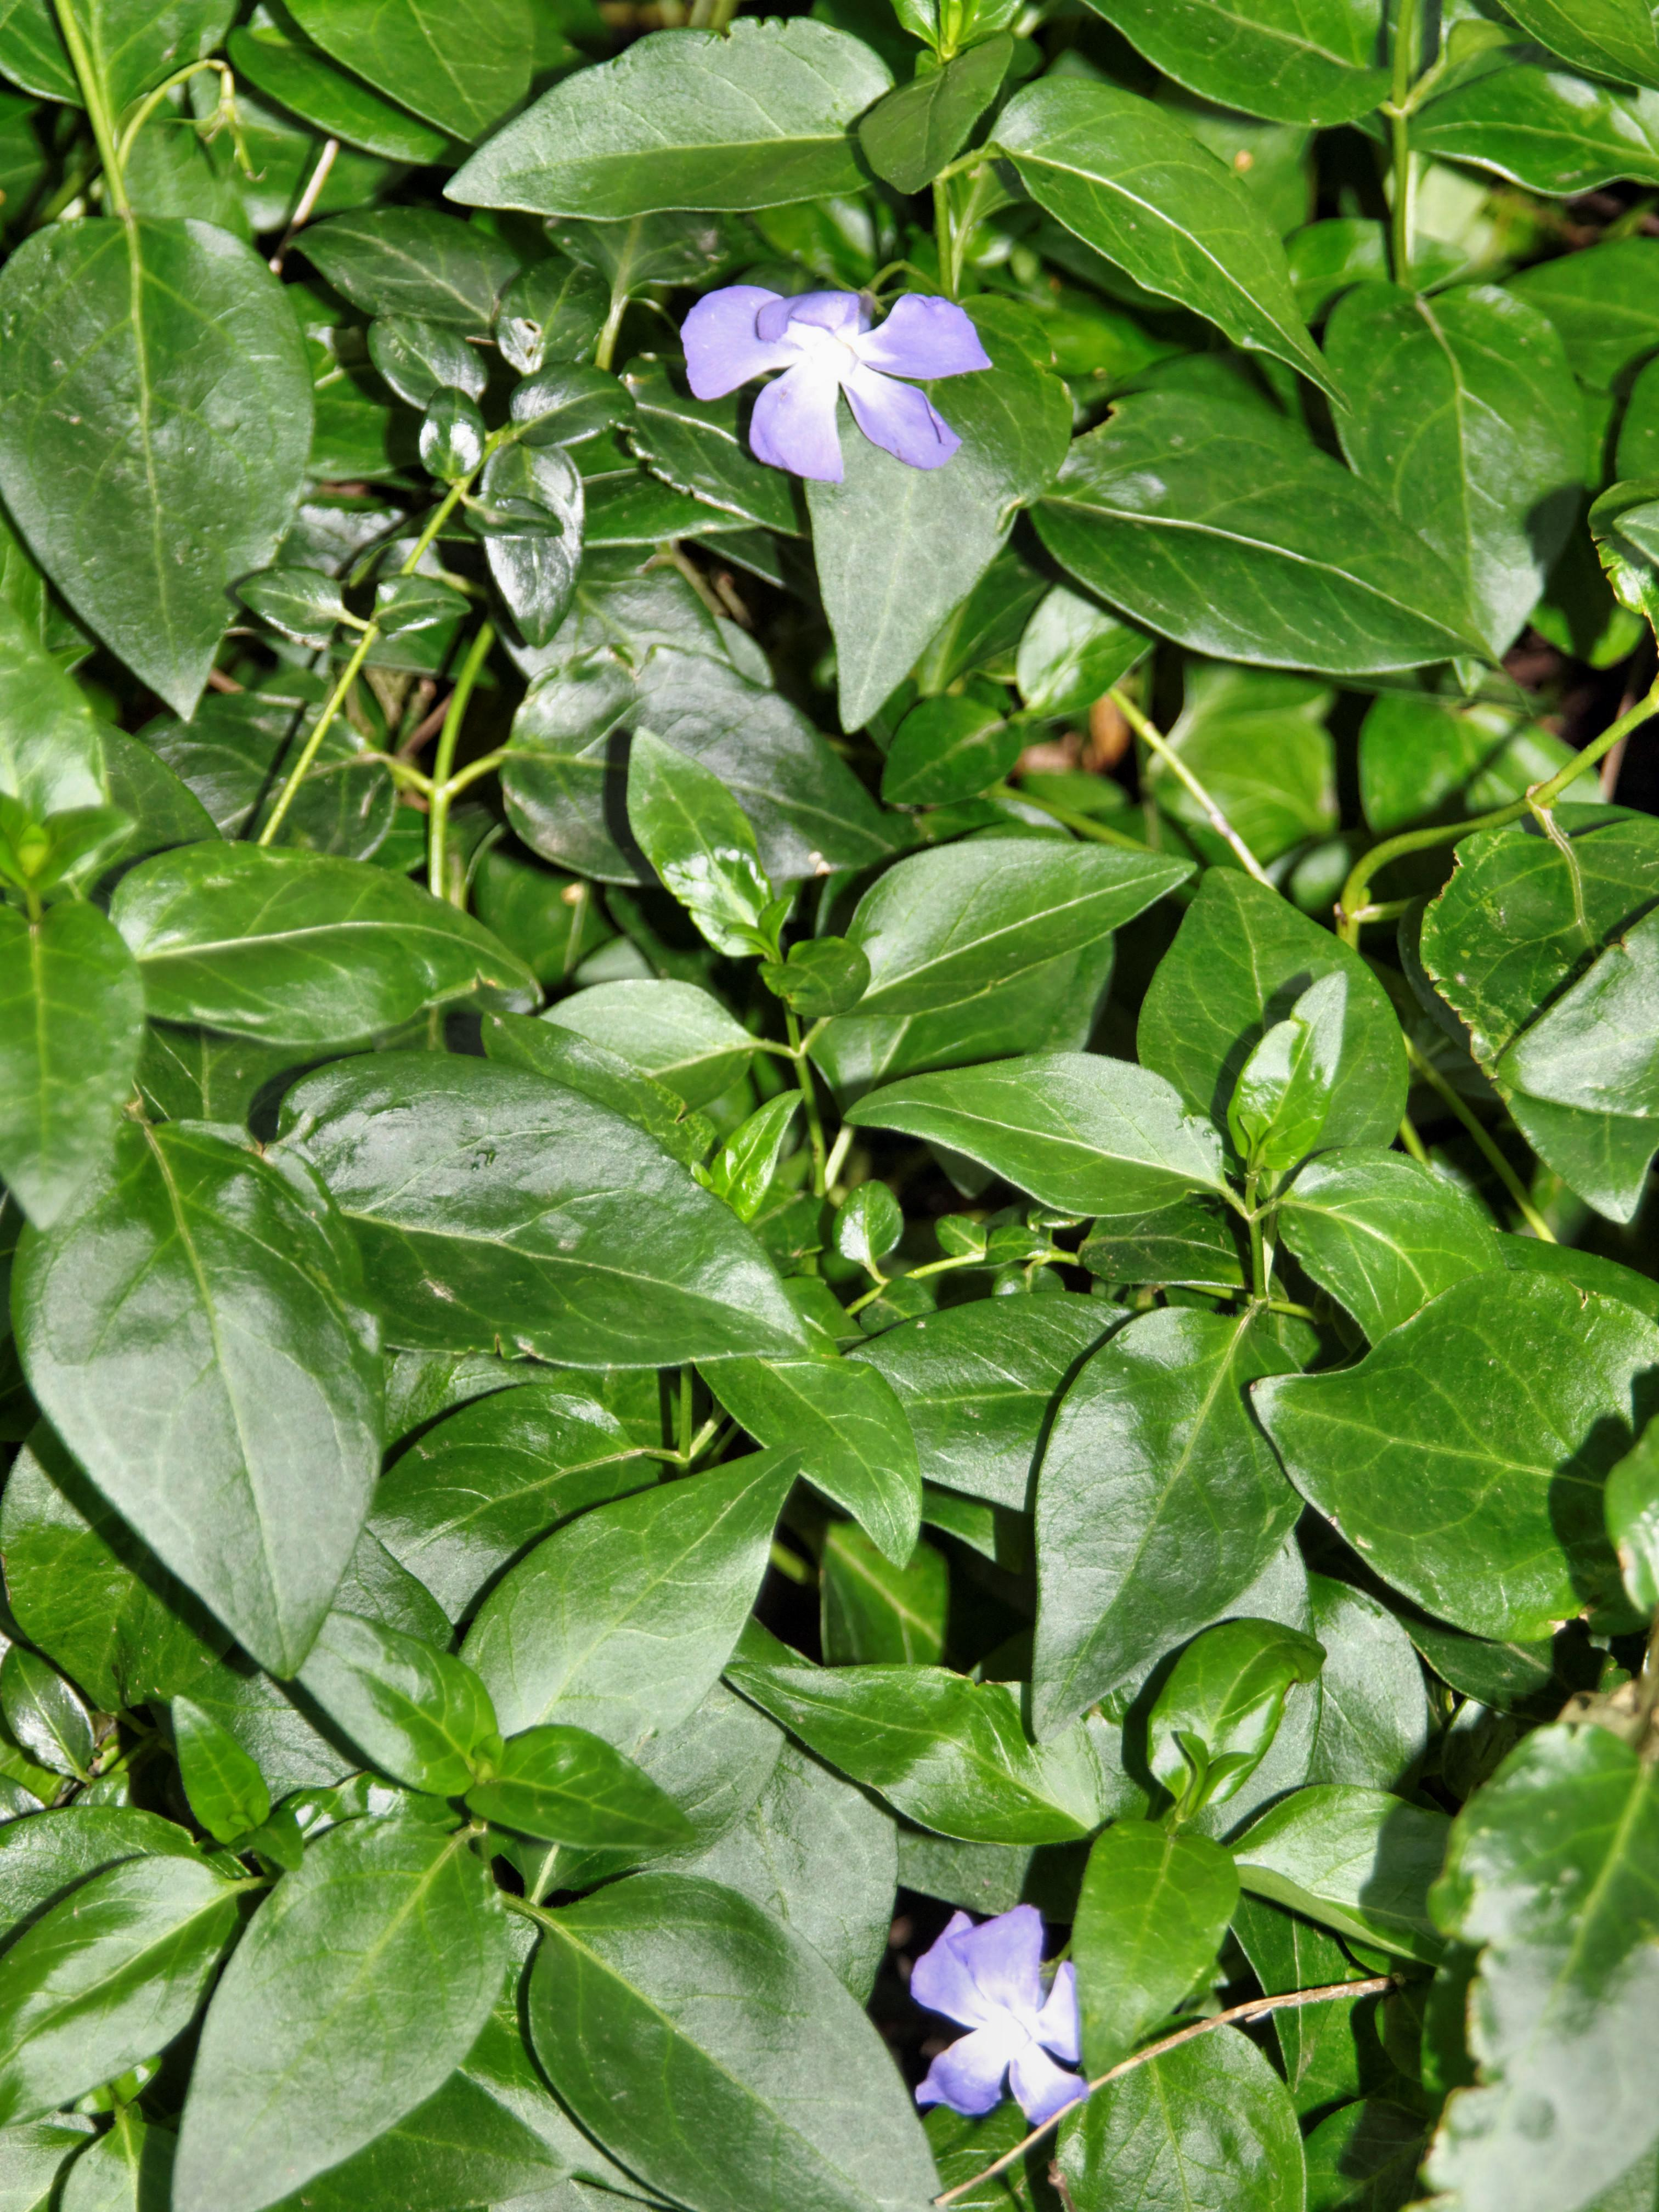 This should be Vinca-minor.jpeg.  Is it missing?